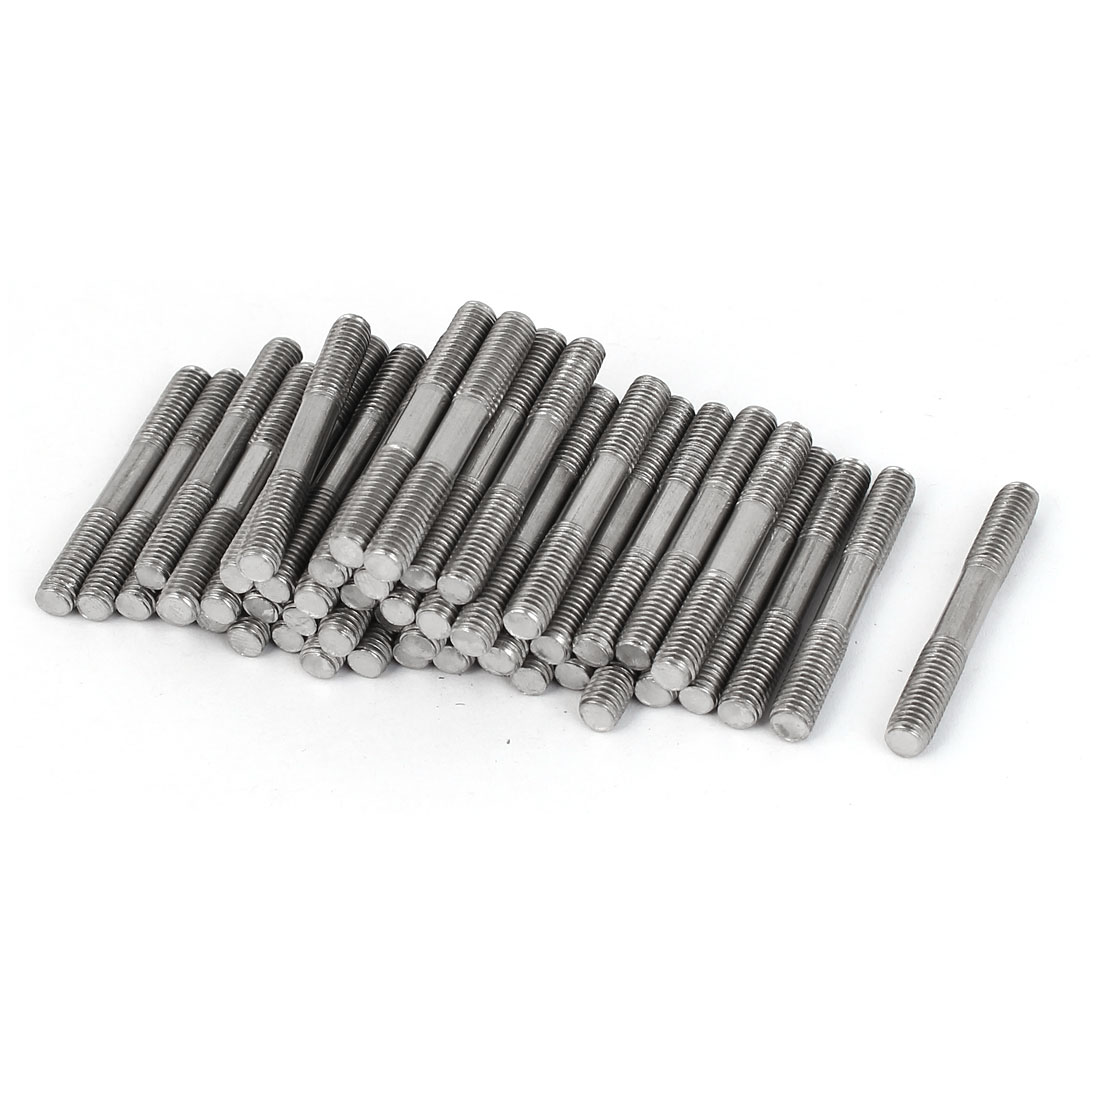 M5x40mm 304 Stainless Steel Double End Thread Tight Adjustable Push Rod Stud 50pcs